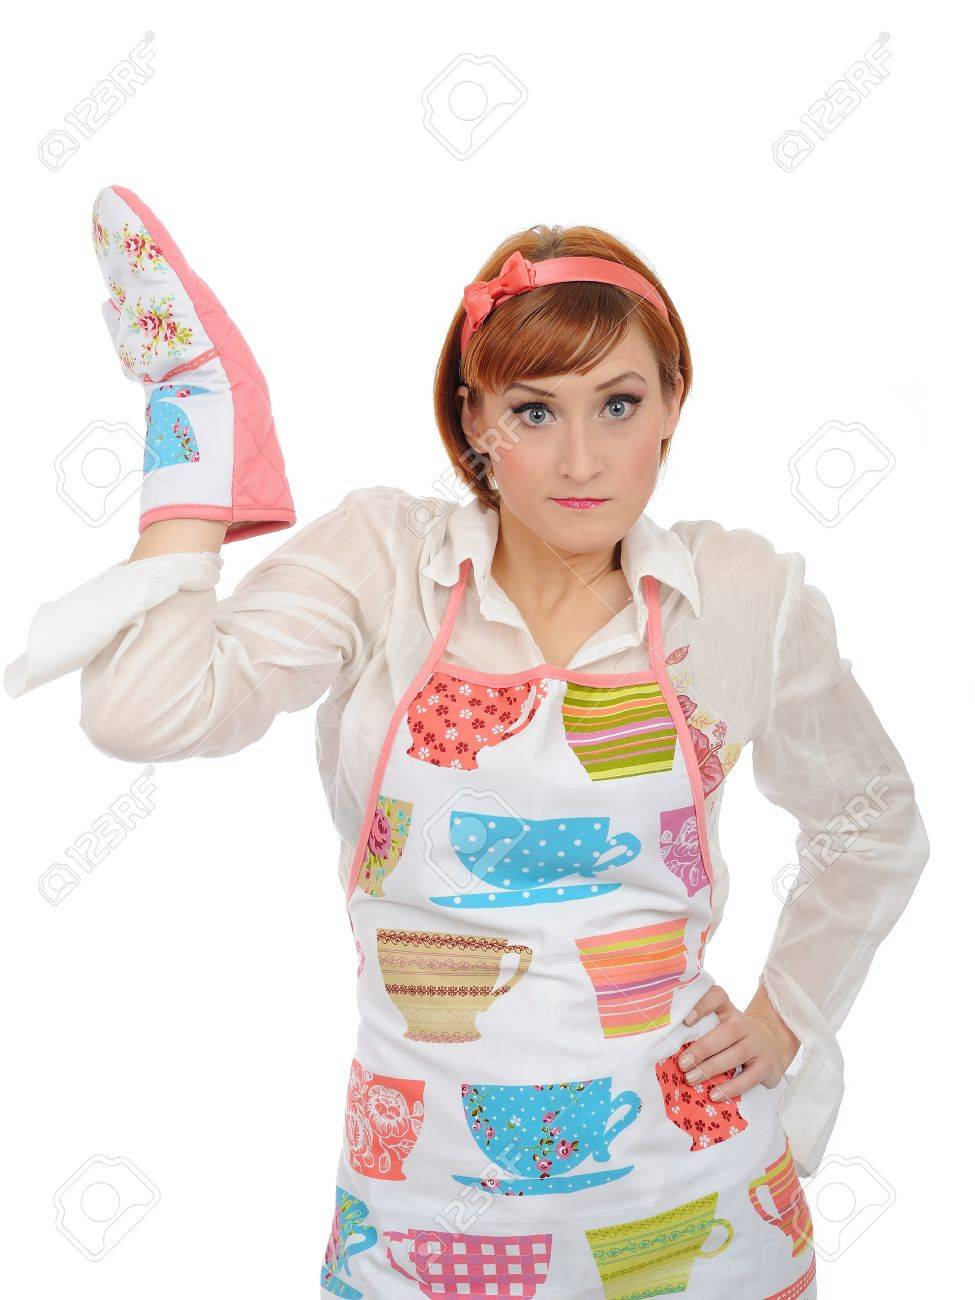 White apron girl - Beautiful Cooking Woman In Apron And Kitchen Glove Having Problem Isolated On White Background